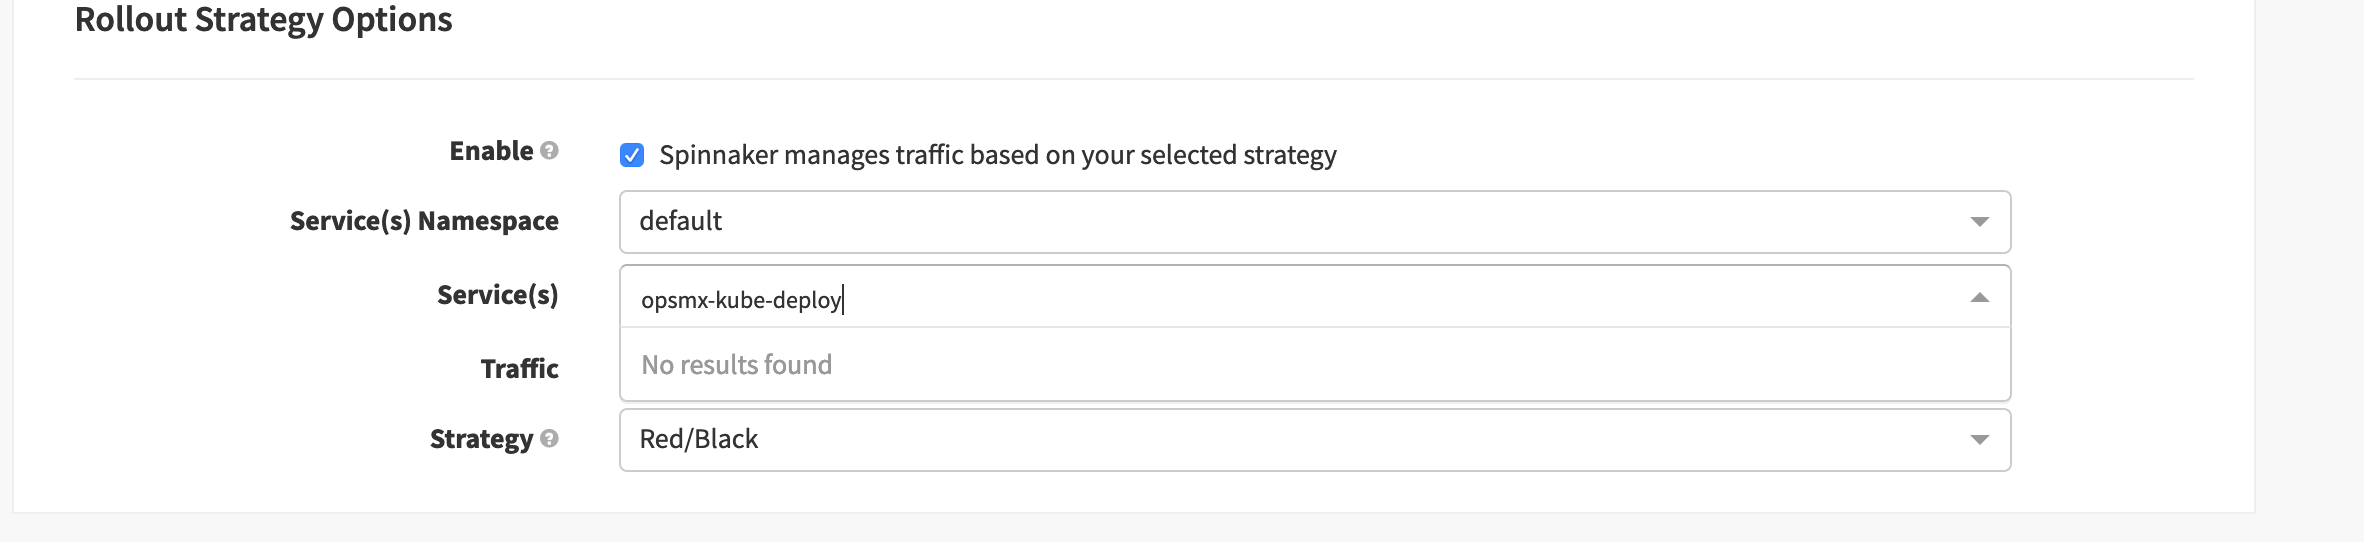 Select Spinnaker Red/Black (Blue/Green) strategy to manage traffic to deployment